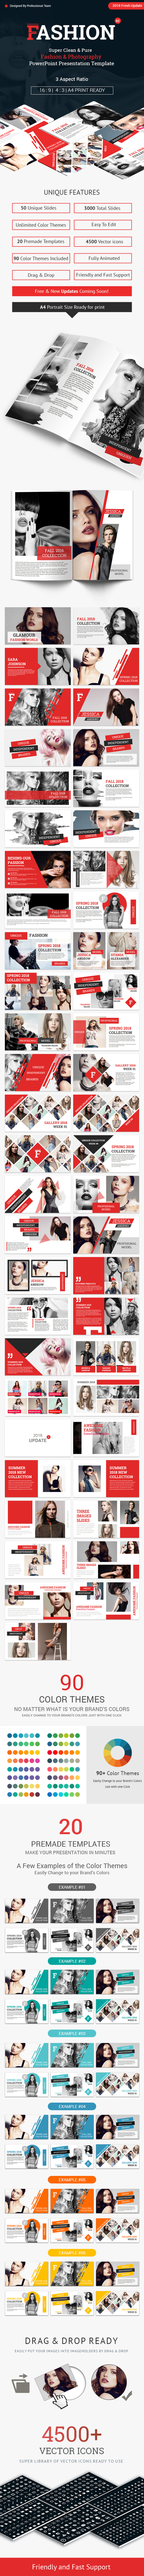 Fashion and Photography PowerPoint Presentation Template - Business PowerPoint Templates